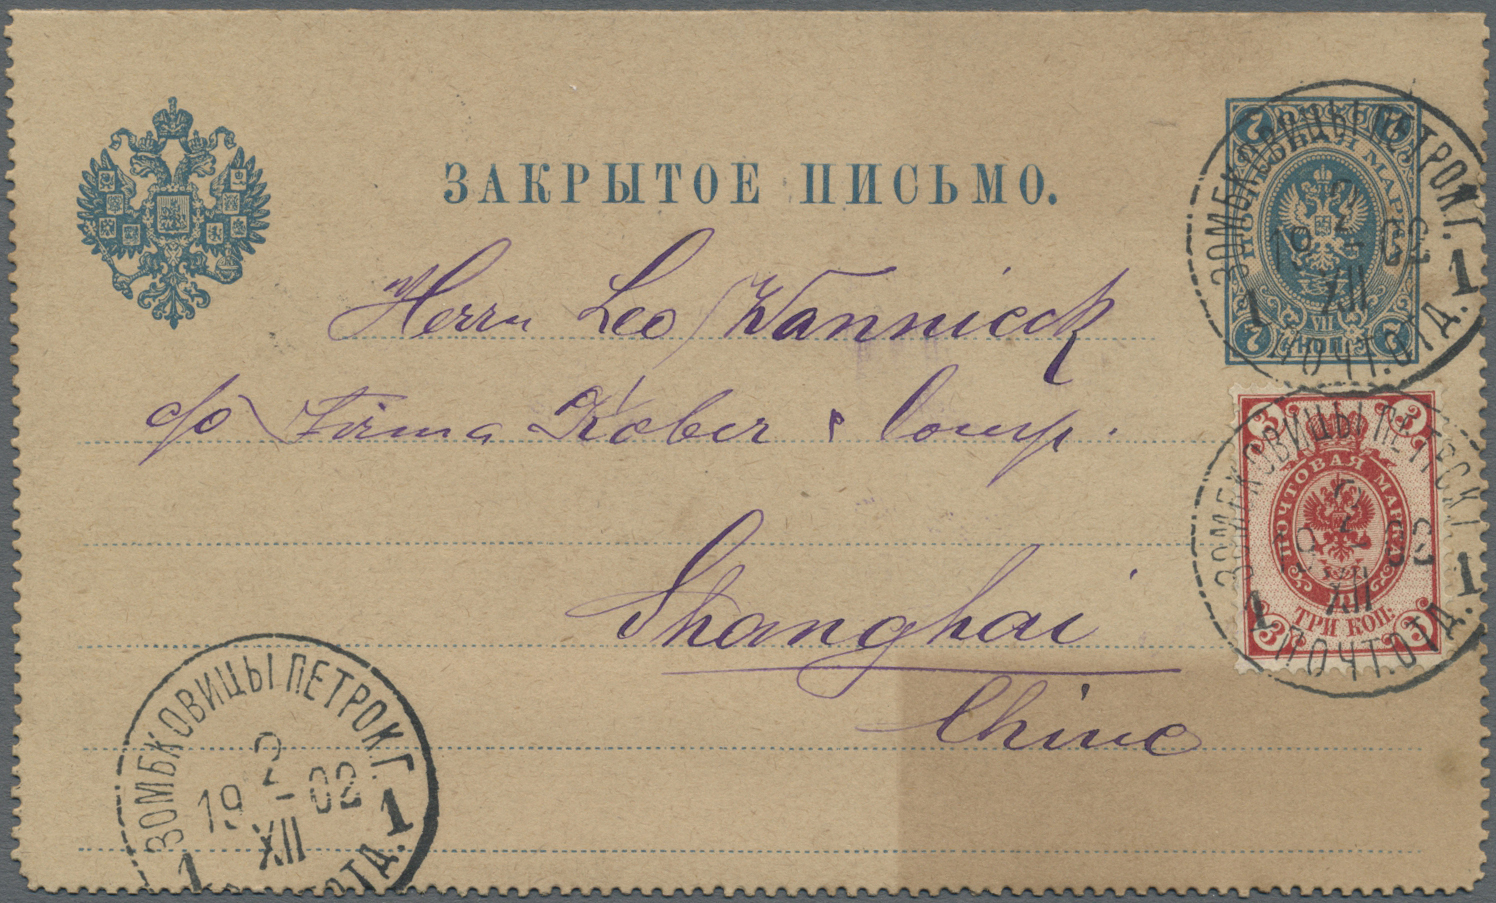 Lot 18625 - Russland - Ganzsachen  -  Auktionshaus Christoph Gärtner GmbH & Co. KG Single lots Philately Overseas & Europe. Auction #39 Day 4